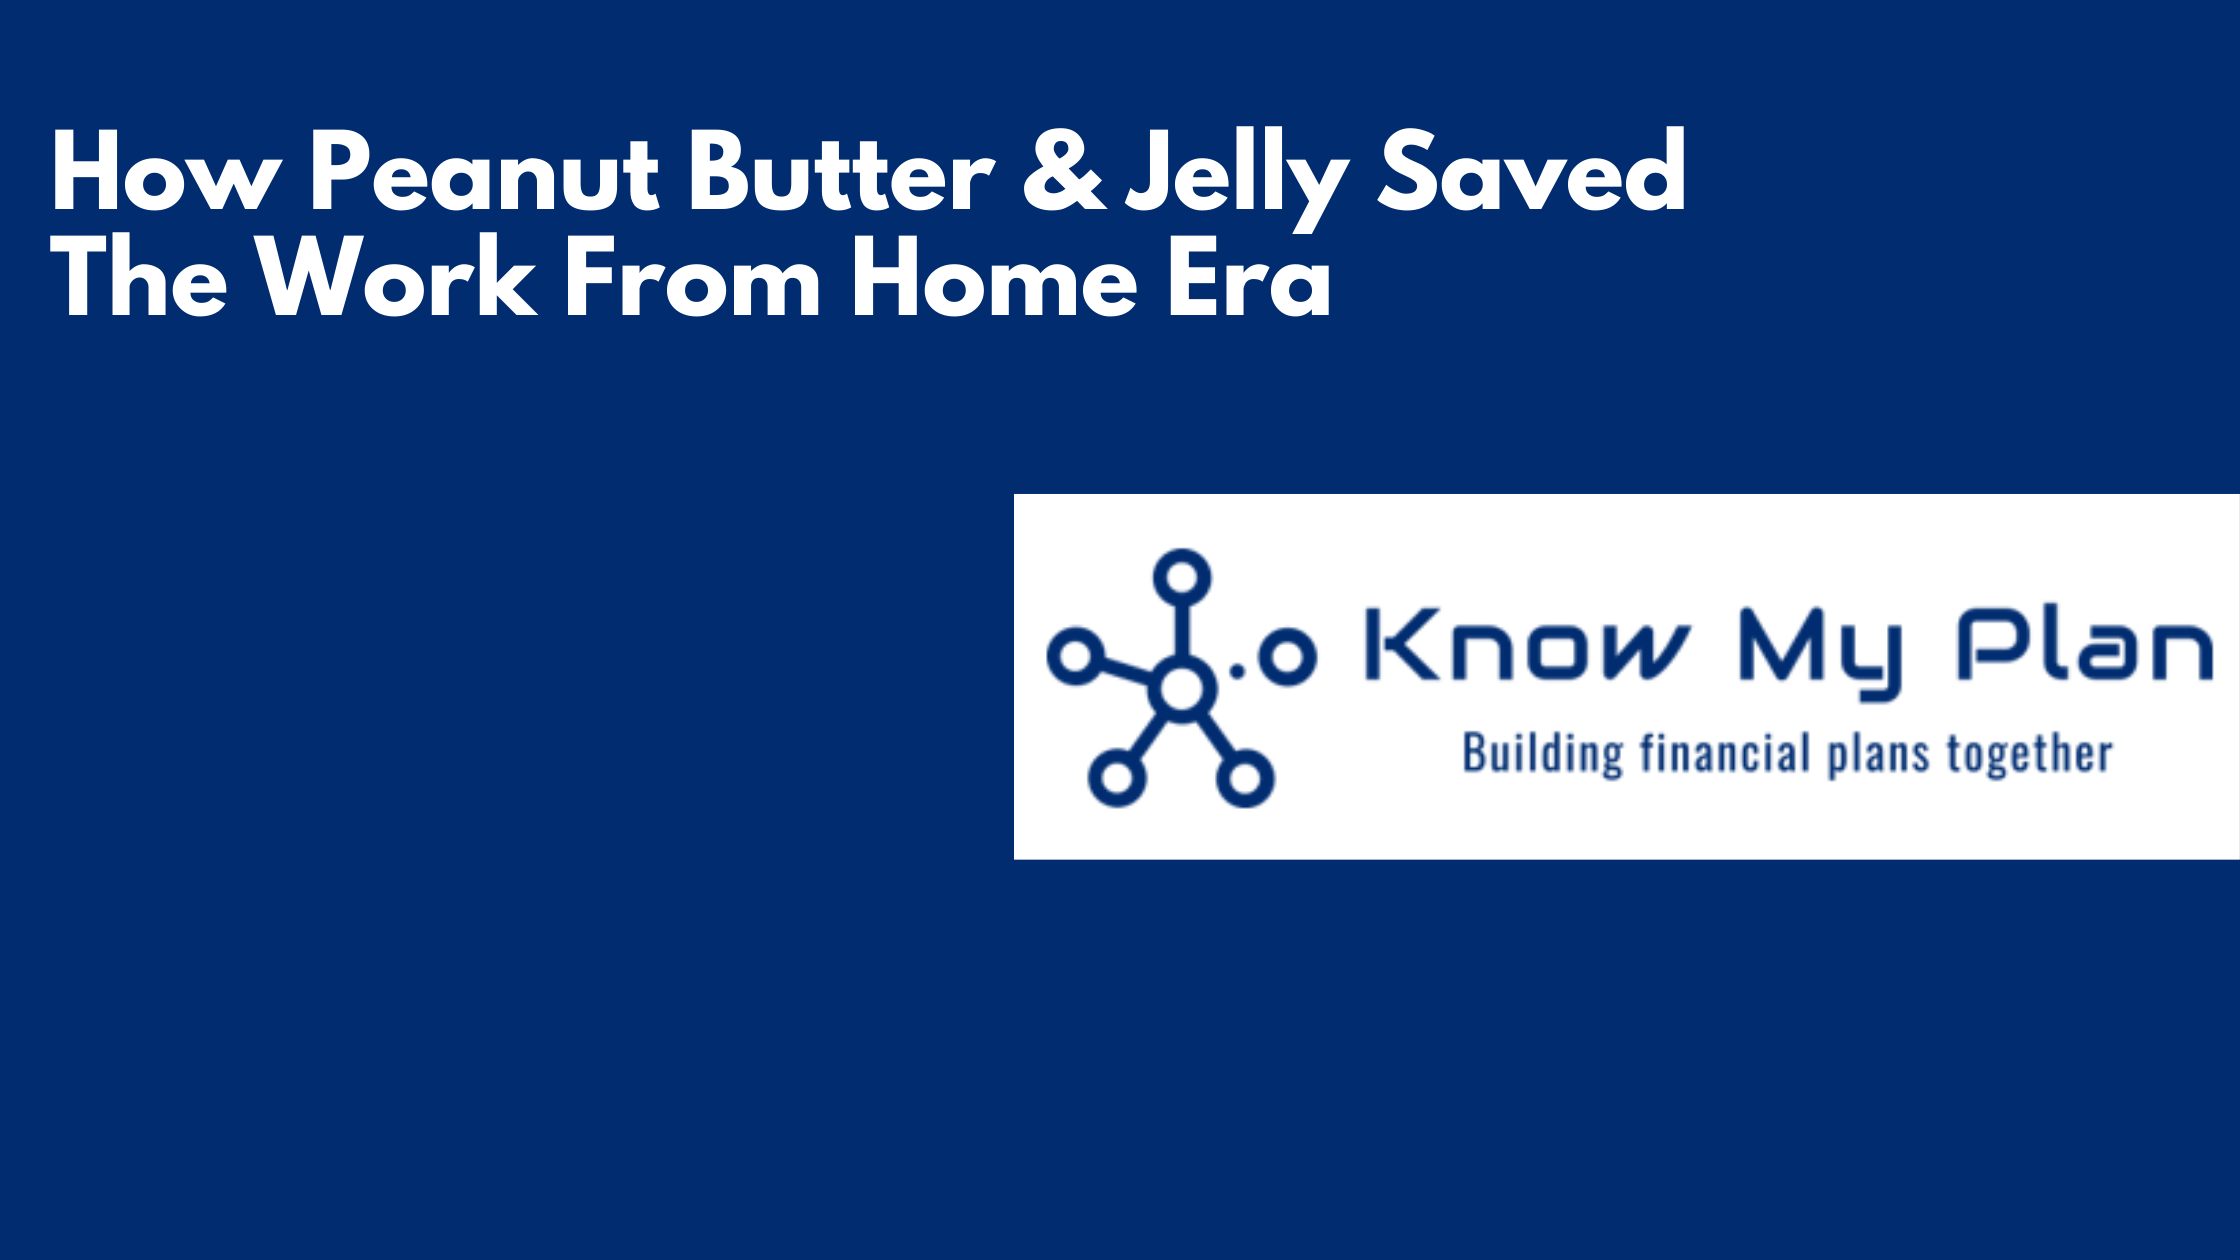 How Peanut Butter and Jelly Saved The Work From Home Era